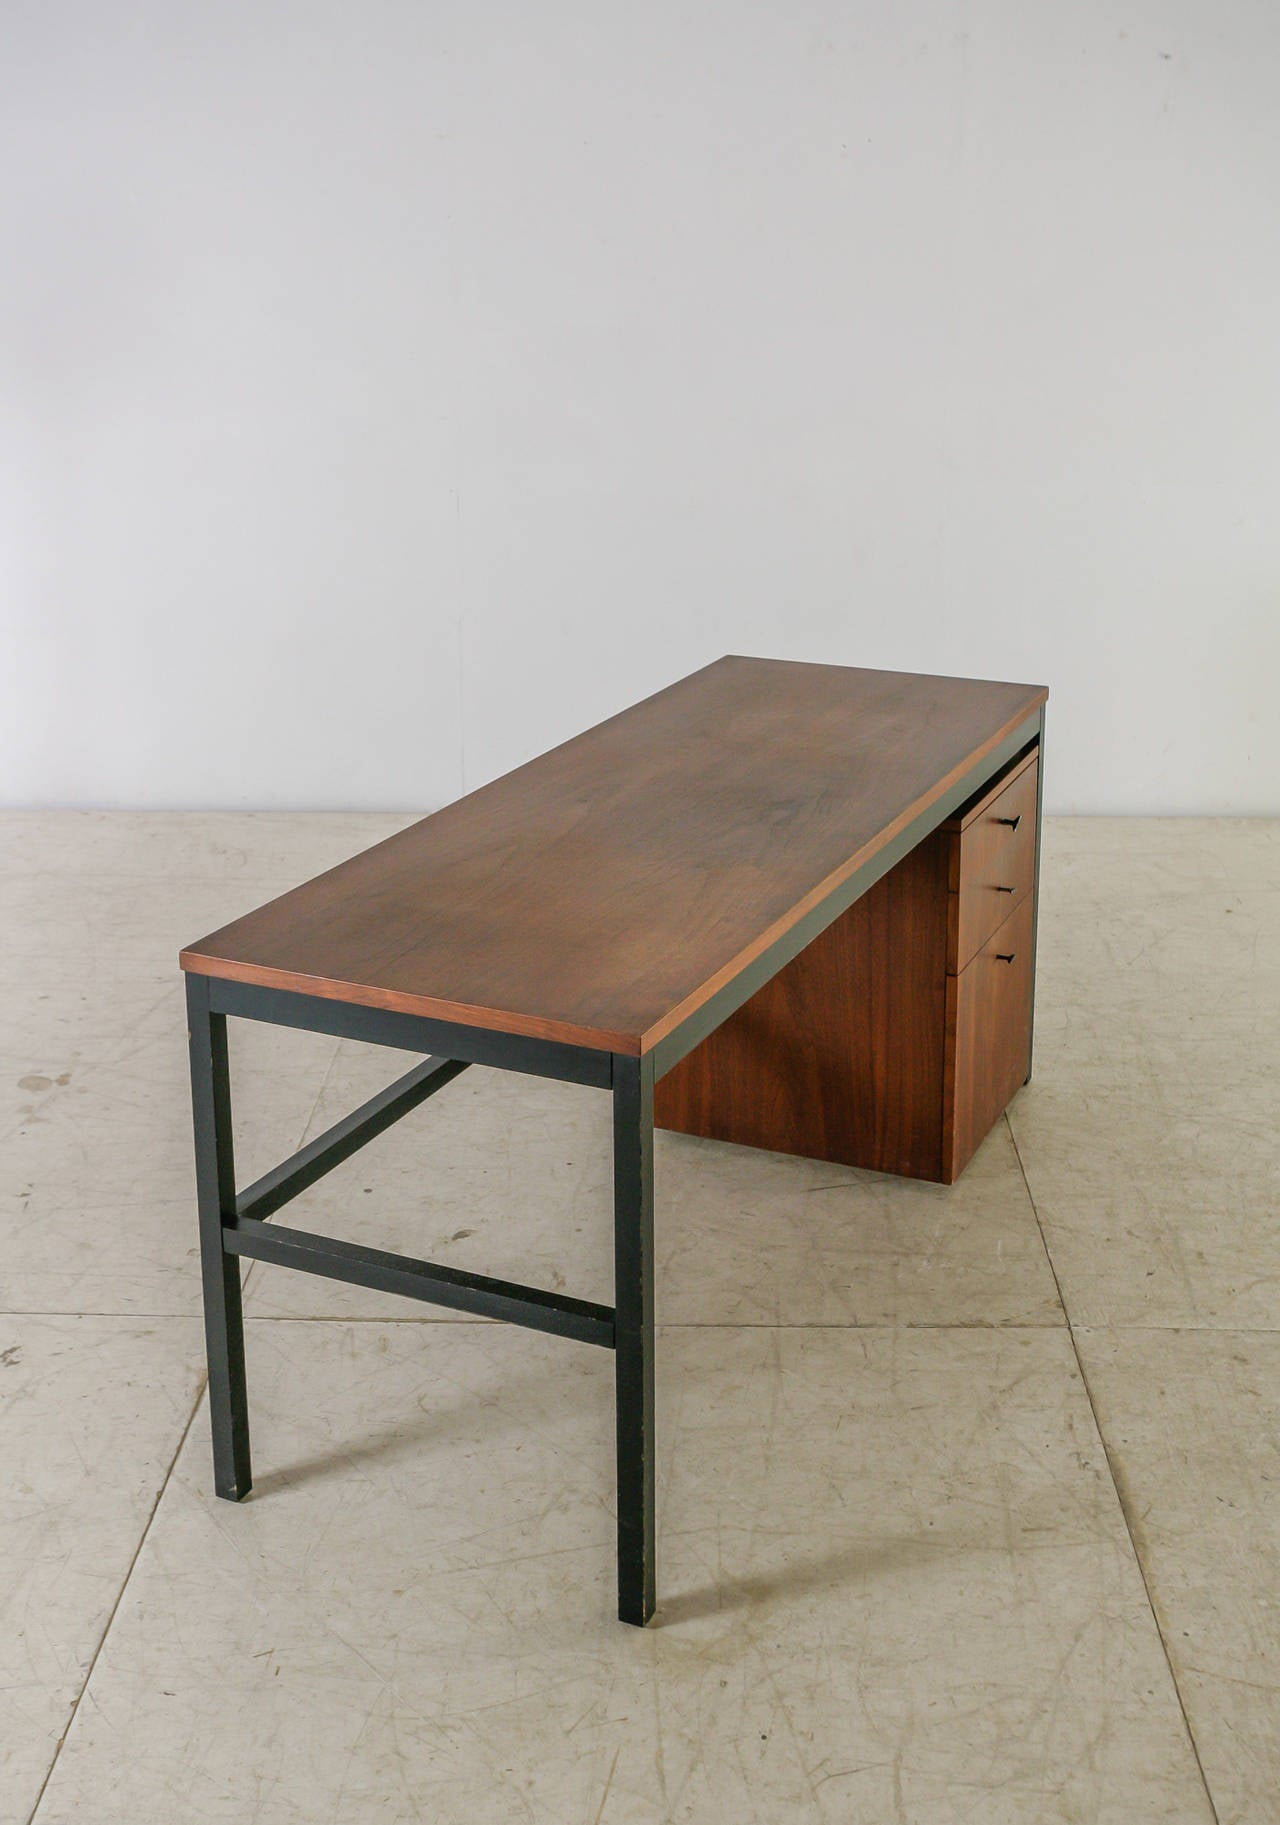 Milo Baughman for Directional Desk Annex Console Table, USA, 1960s In Good Condition For Sale In Maastricht, NL